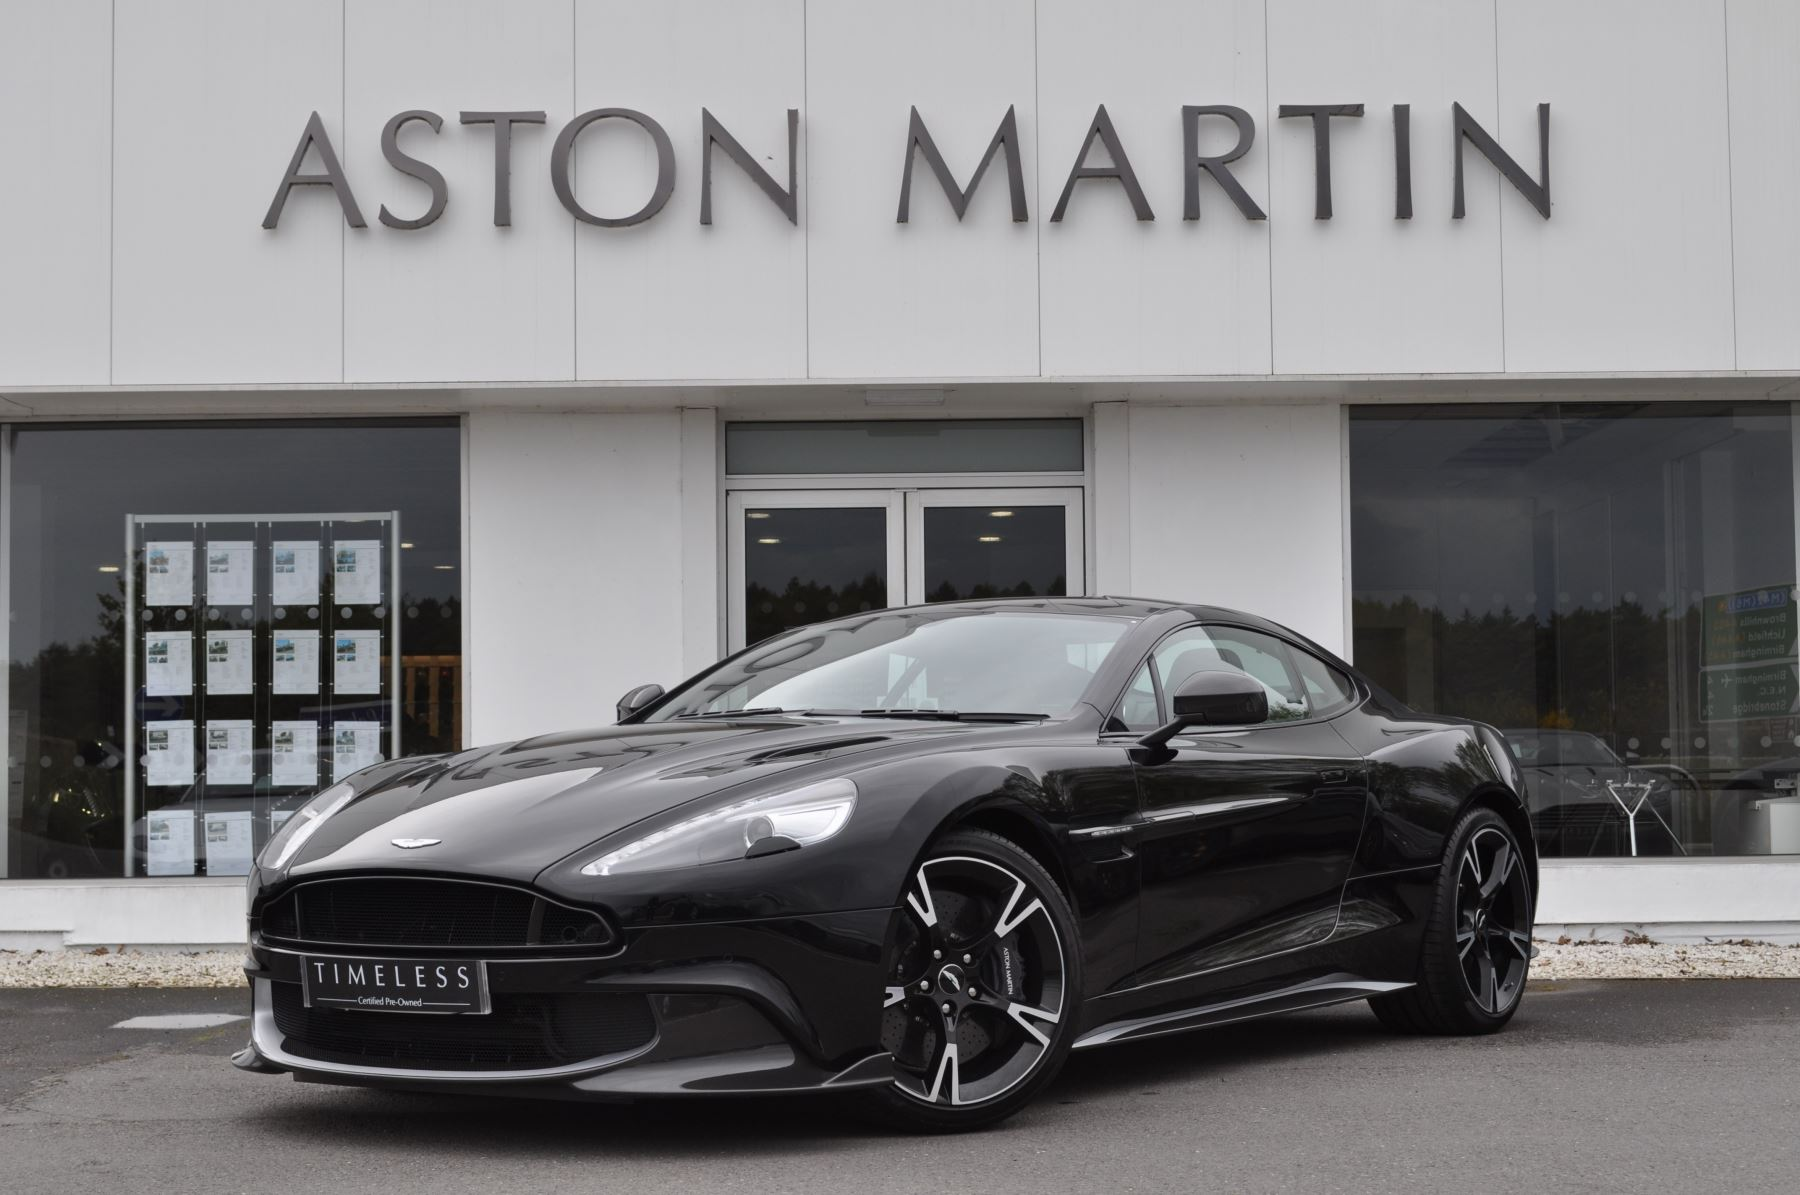 Aston Martin Vanquish V12 [595] S 2+2 2dr Touchtronic 5.9 Automatic 3 door Coupe (2017)